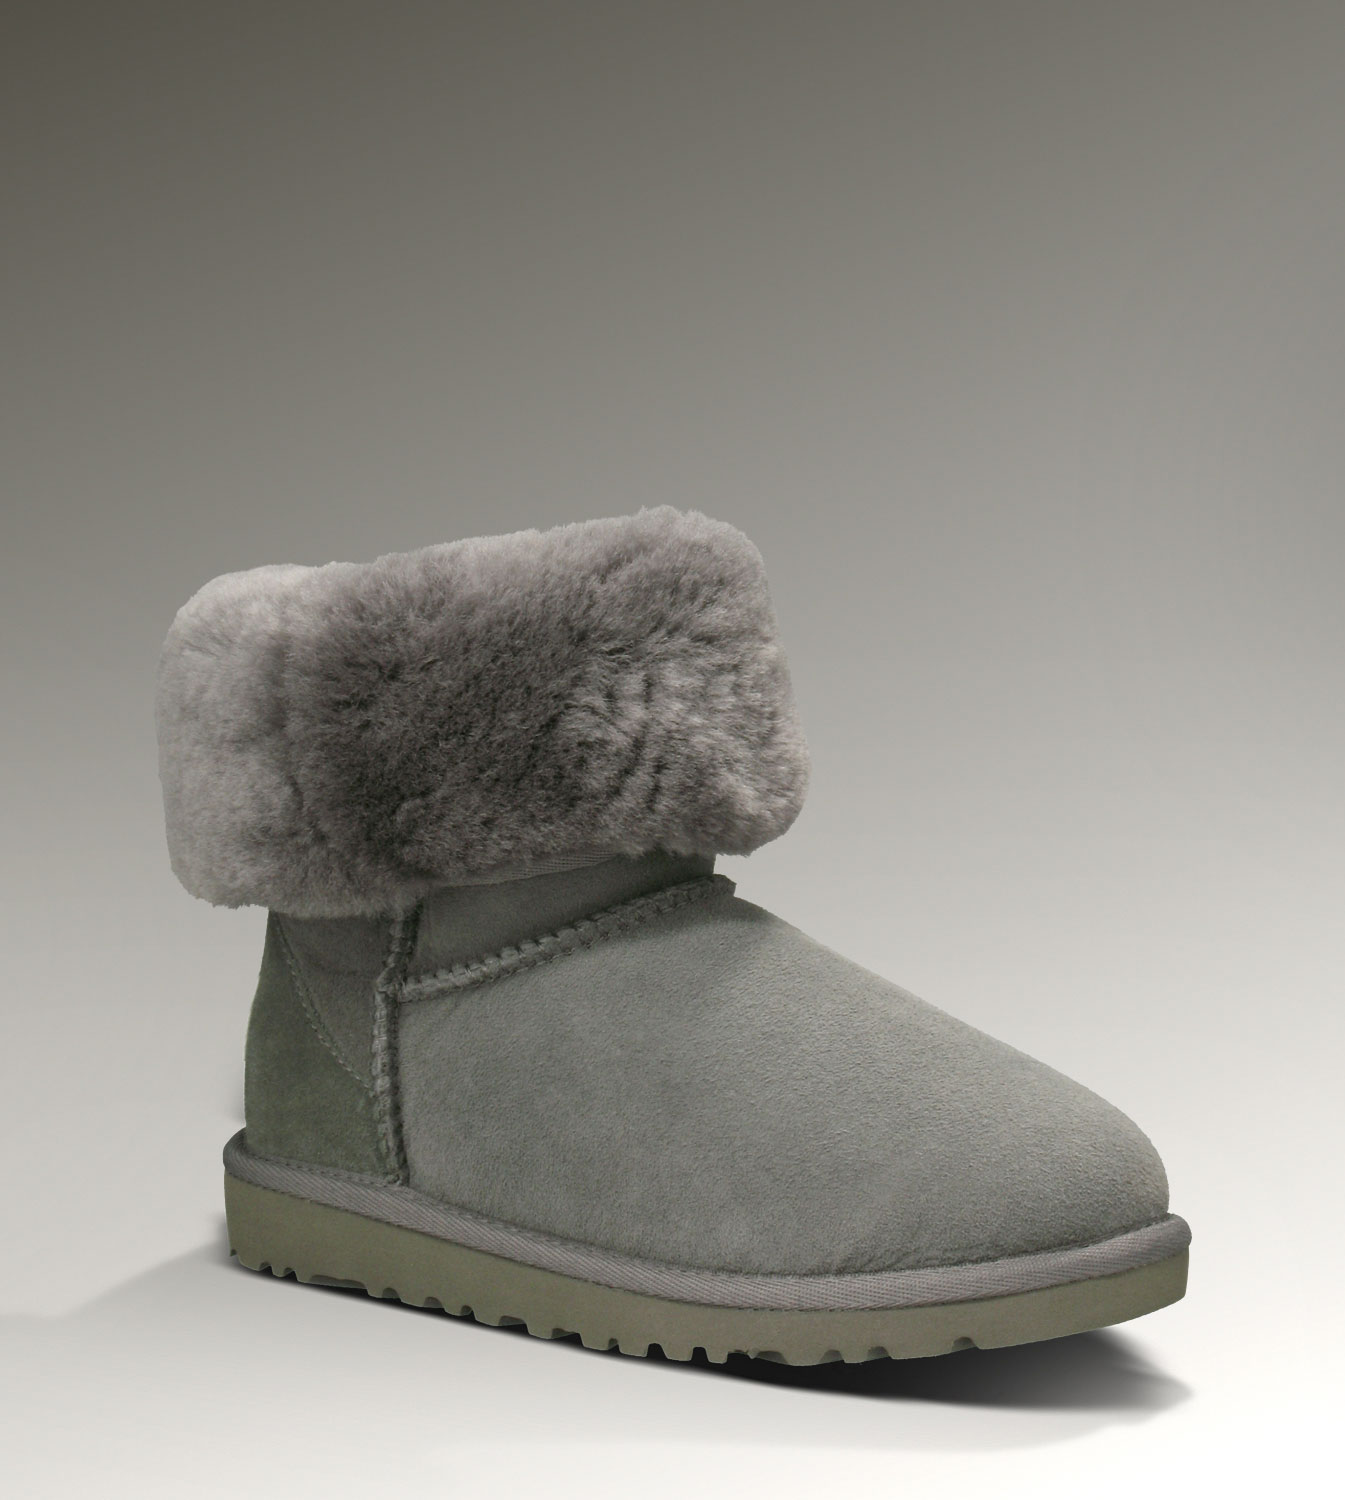 UGG Classic Short 5251 Grey Boots